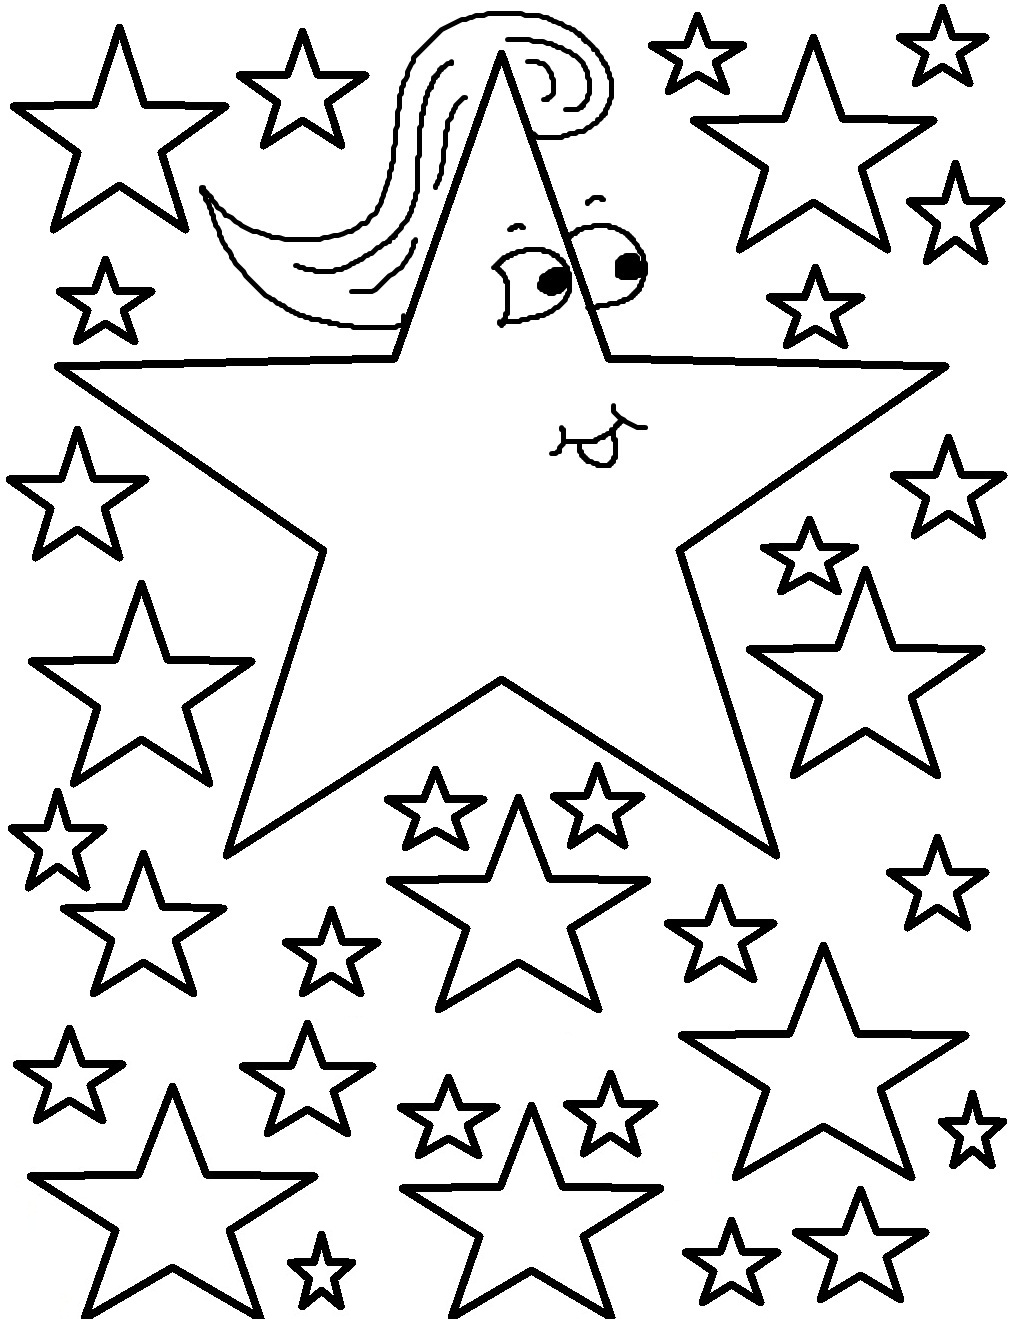 star coloring pages for toddlers - photo#10